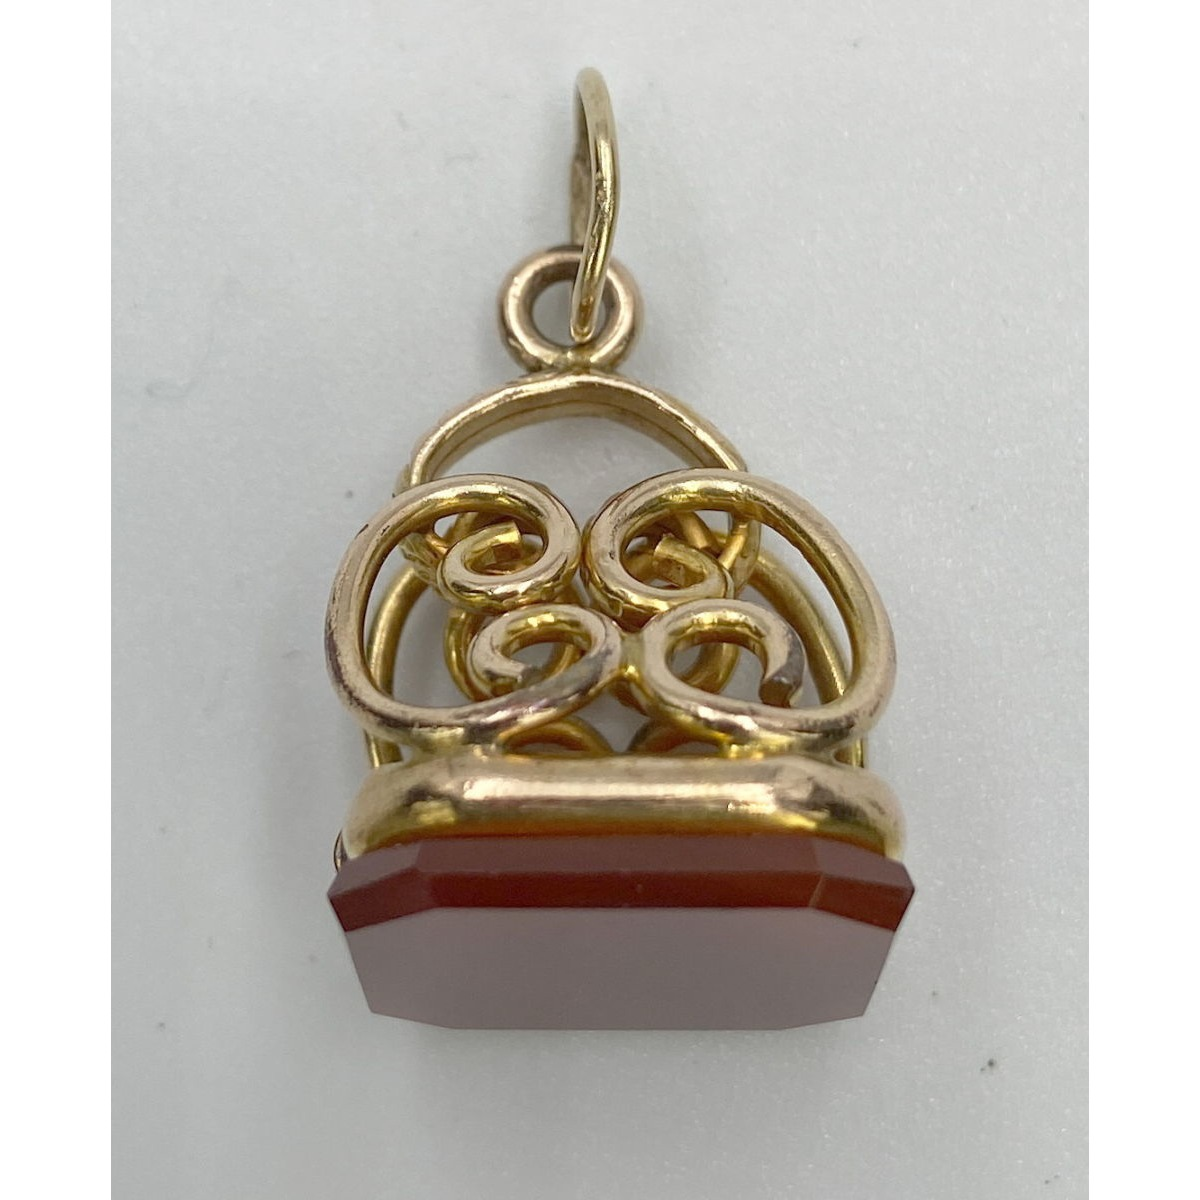 Dimensional 14Kt Gold Framework Antique English Watch Fob - Carnelian